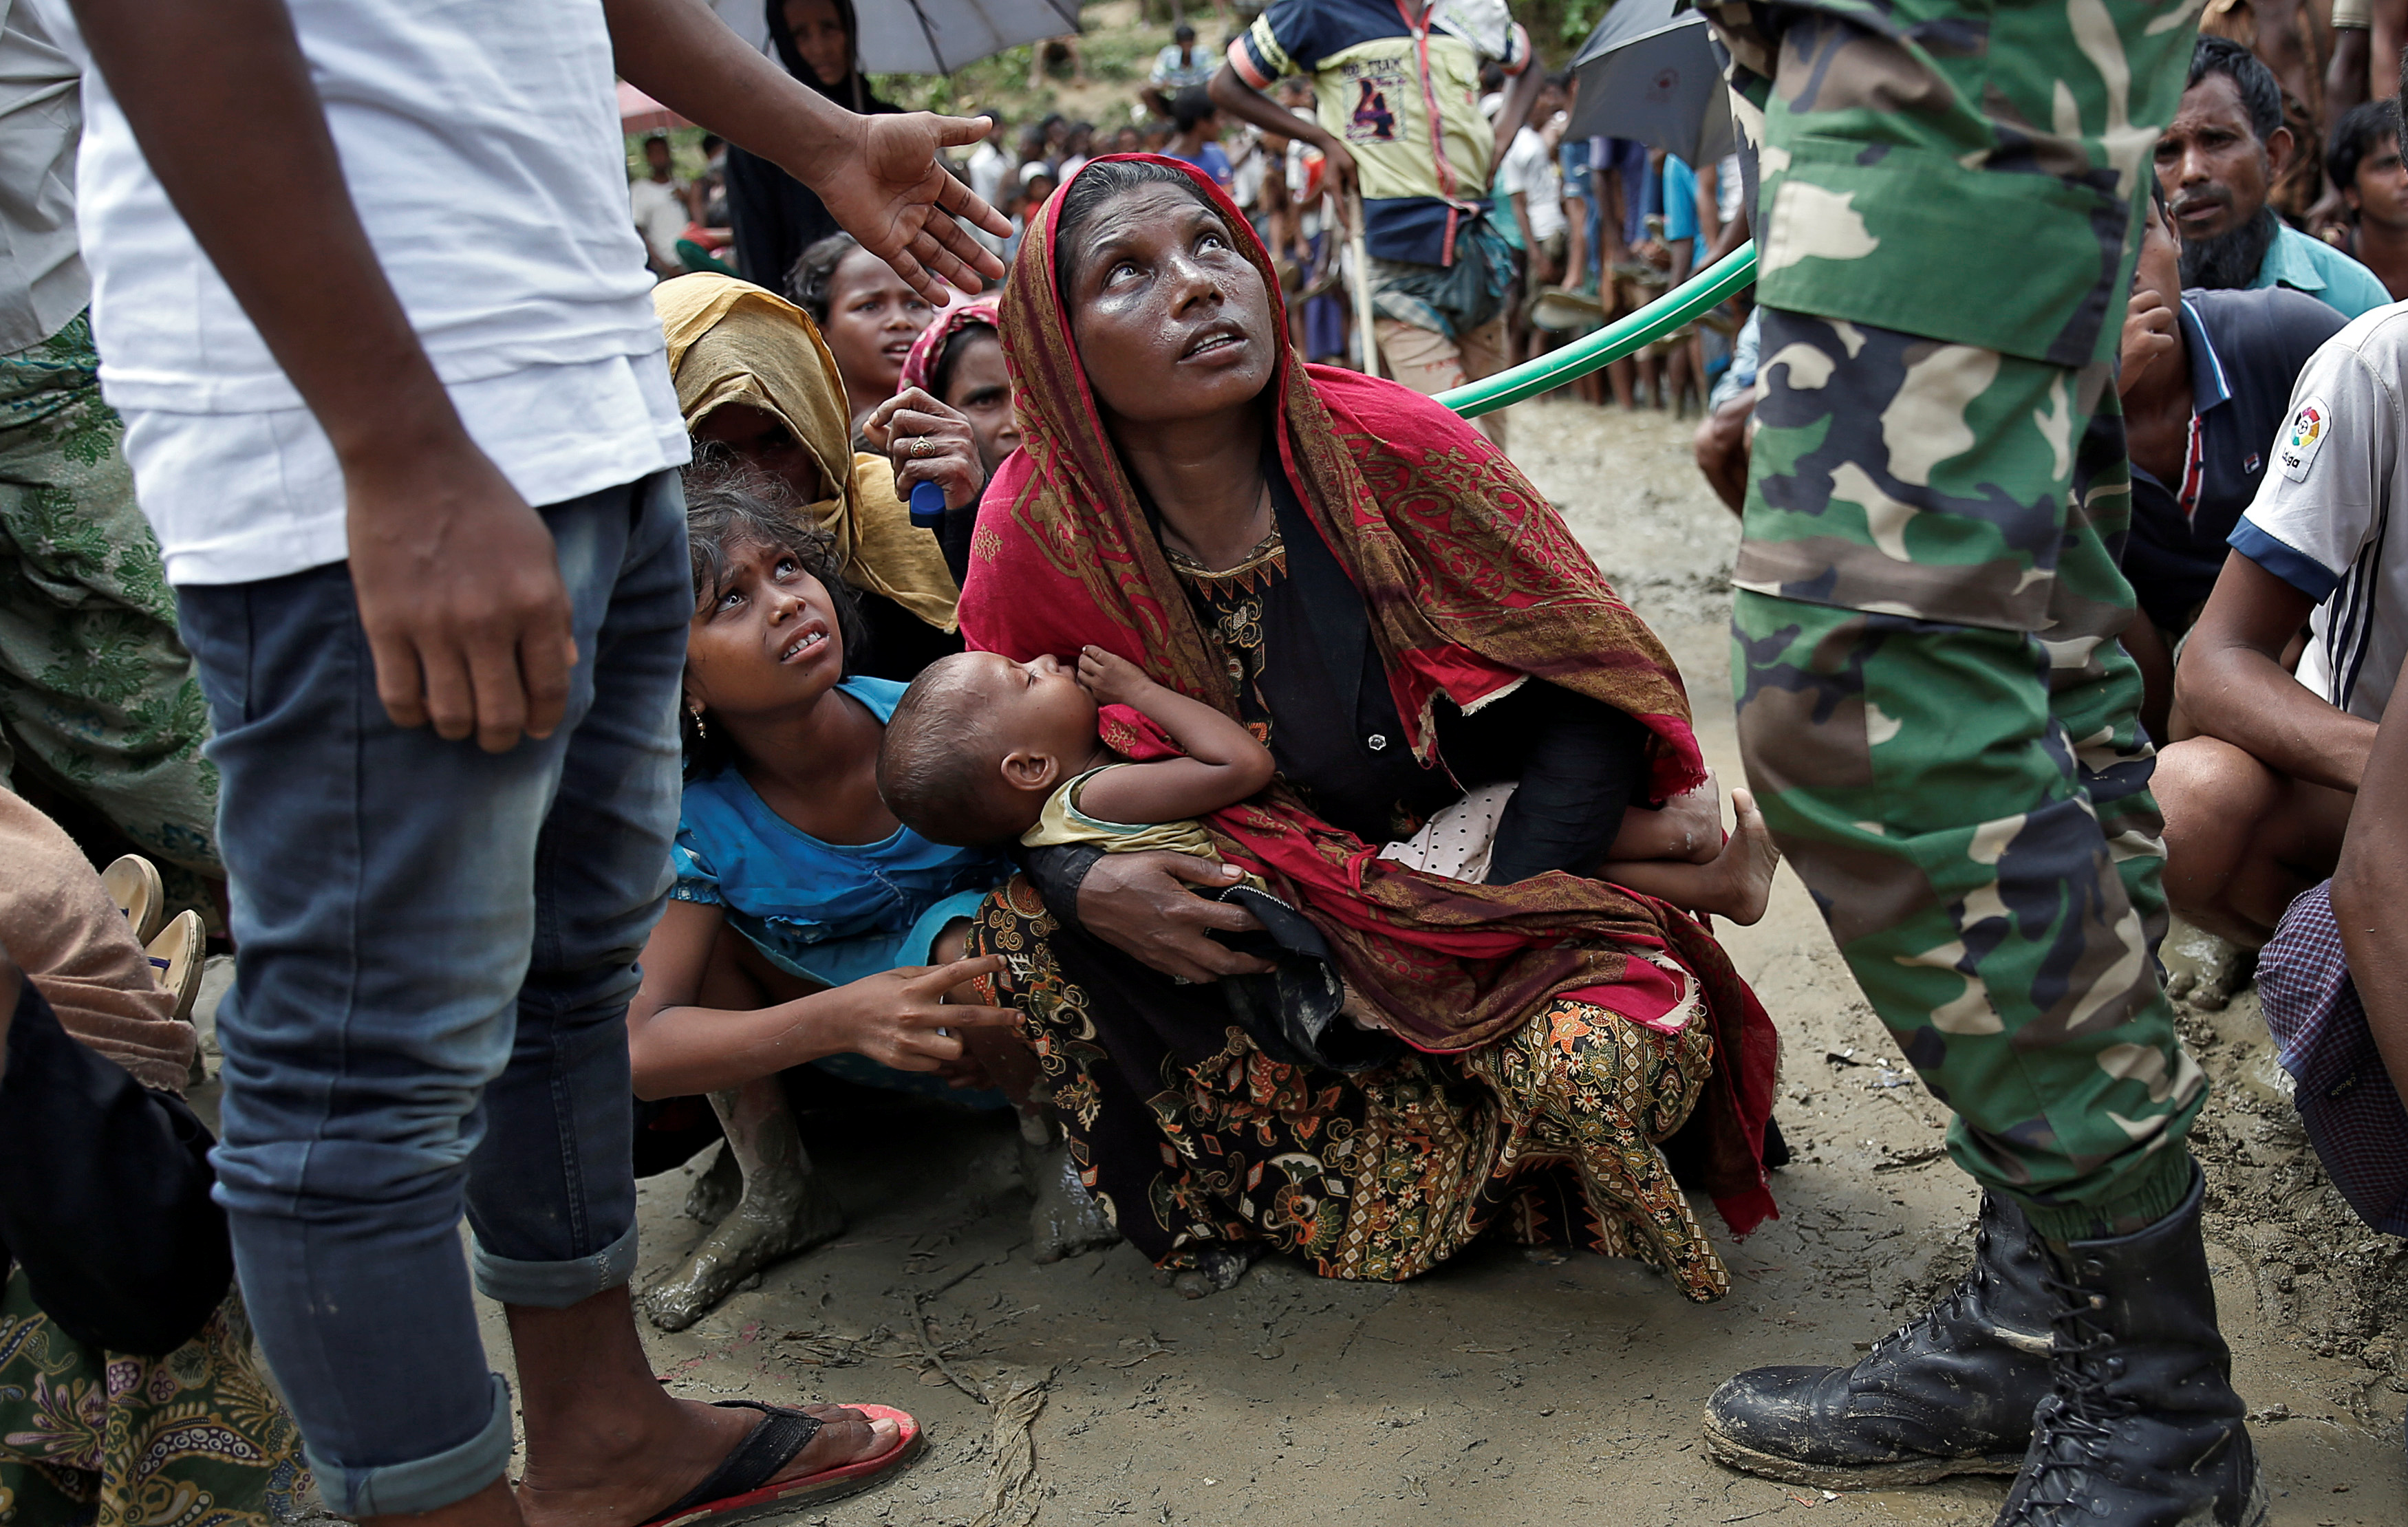 Rohingya refugees wait to receive aid in Cox's Bazar, Bangladesh, Sept. 27, 2017.